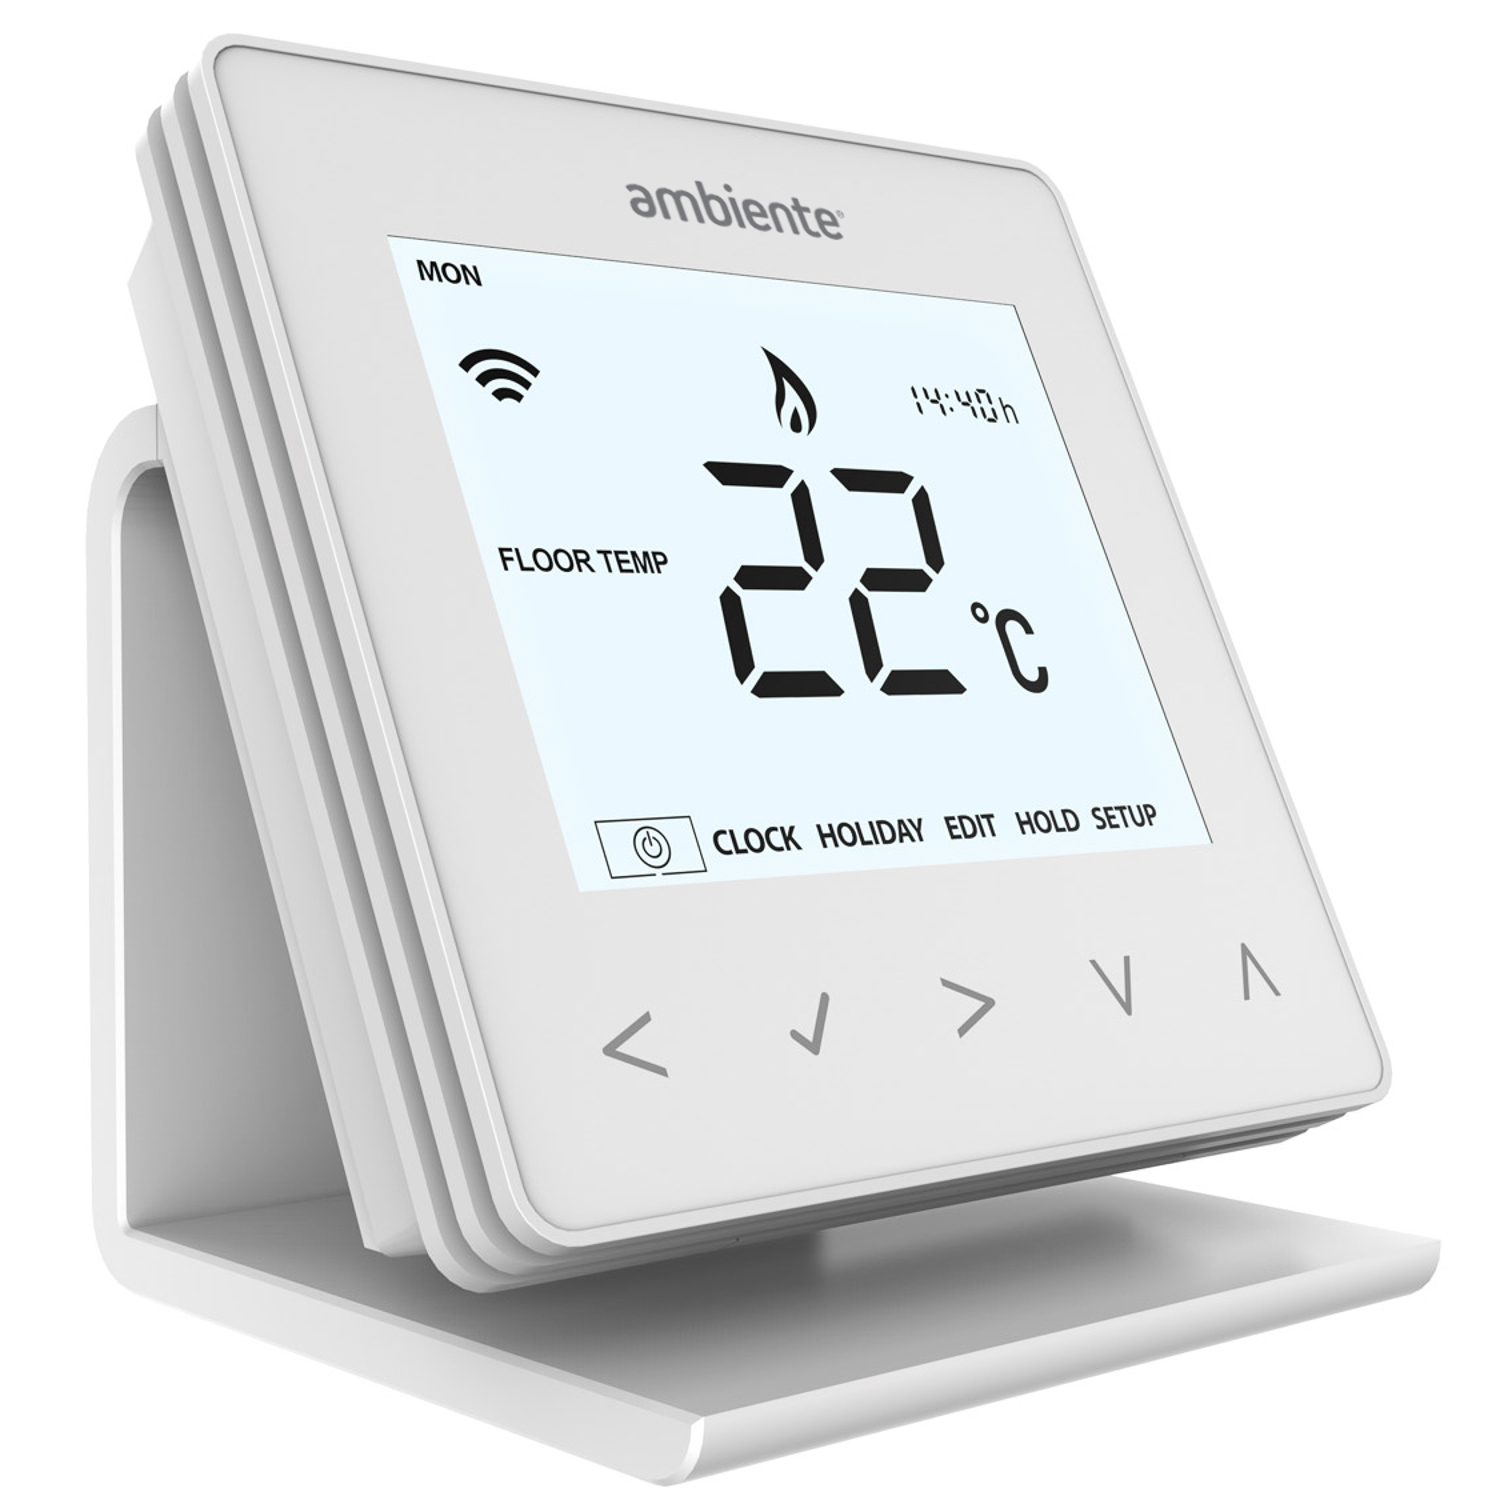 underfloor heating programmable sensor thermostat.jpg